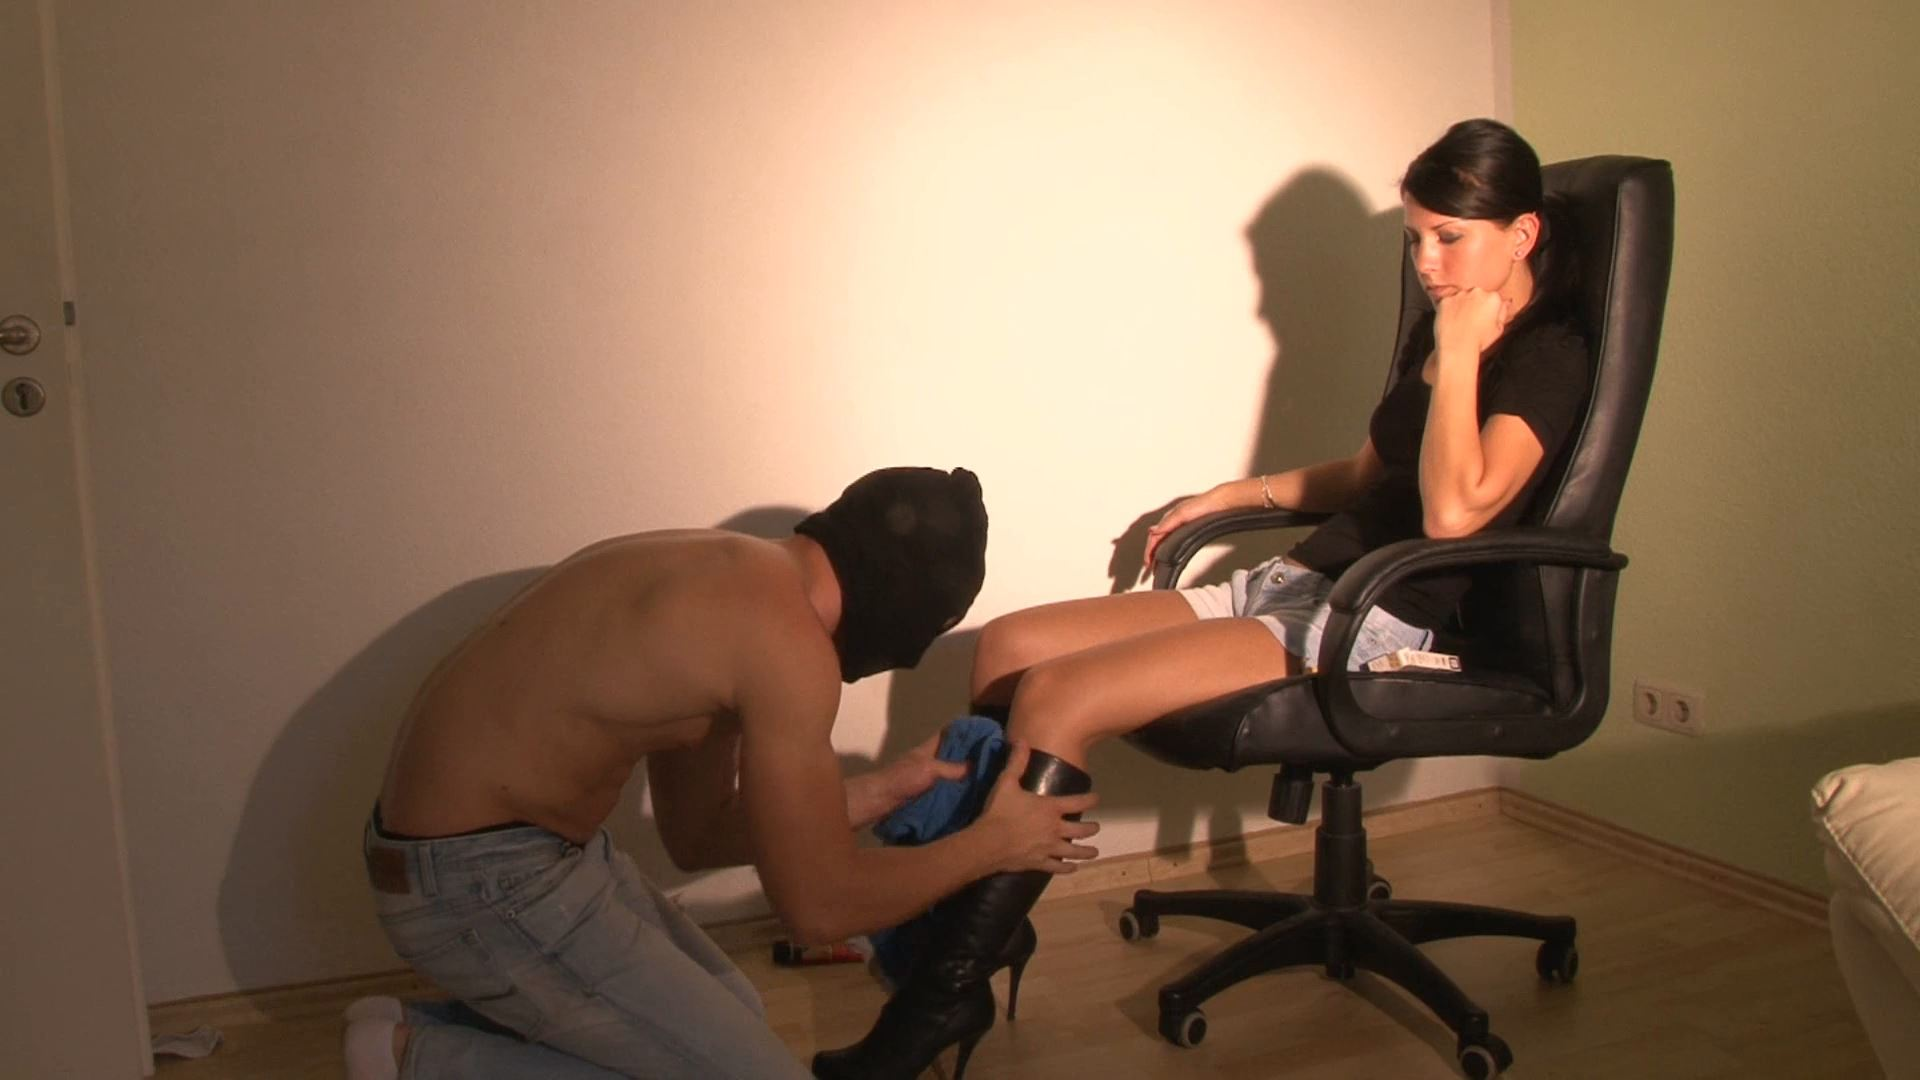 Mistress Chanel In Scene: Boots Cleaner - CLIPS4SALE / CRUSH PASSION - FULL HD/1080p/MP4